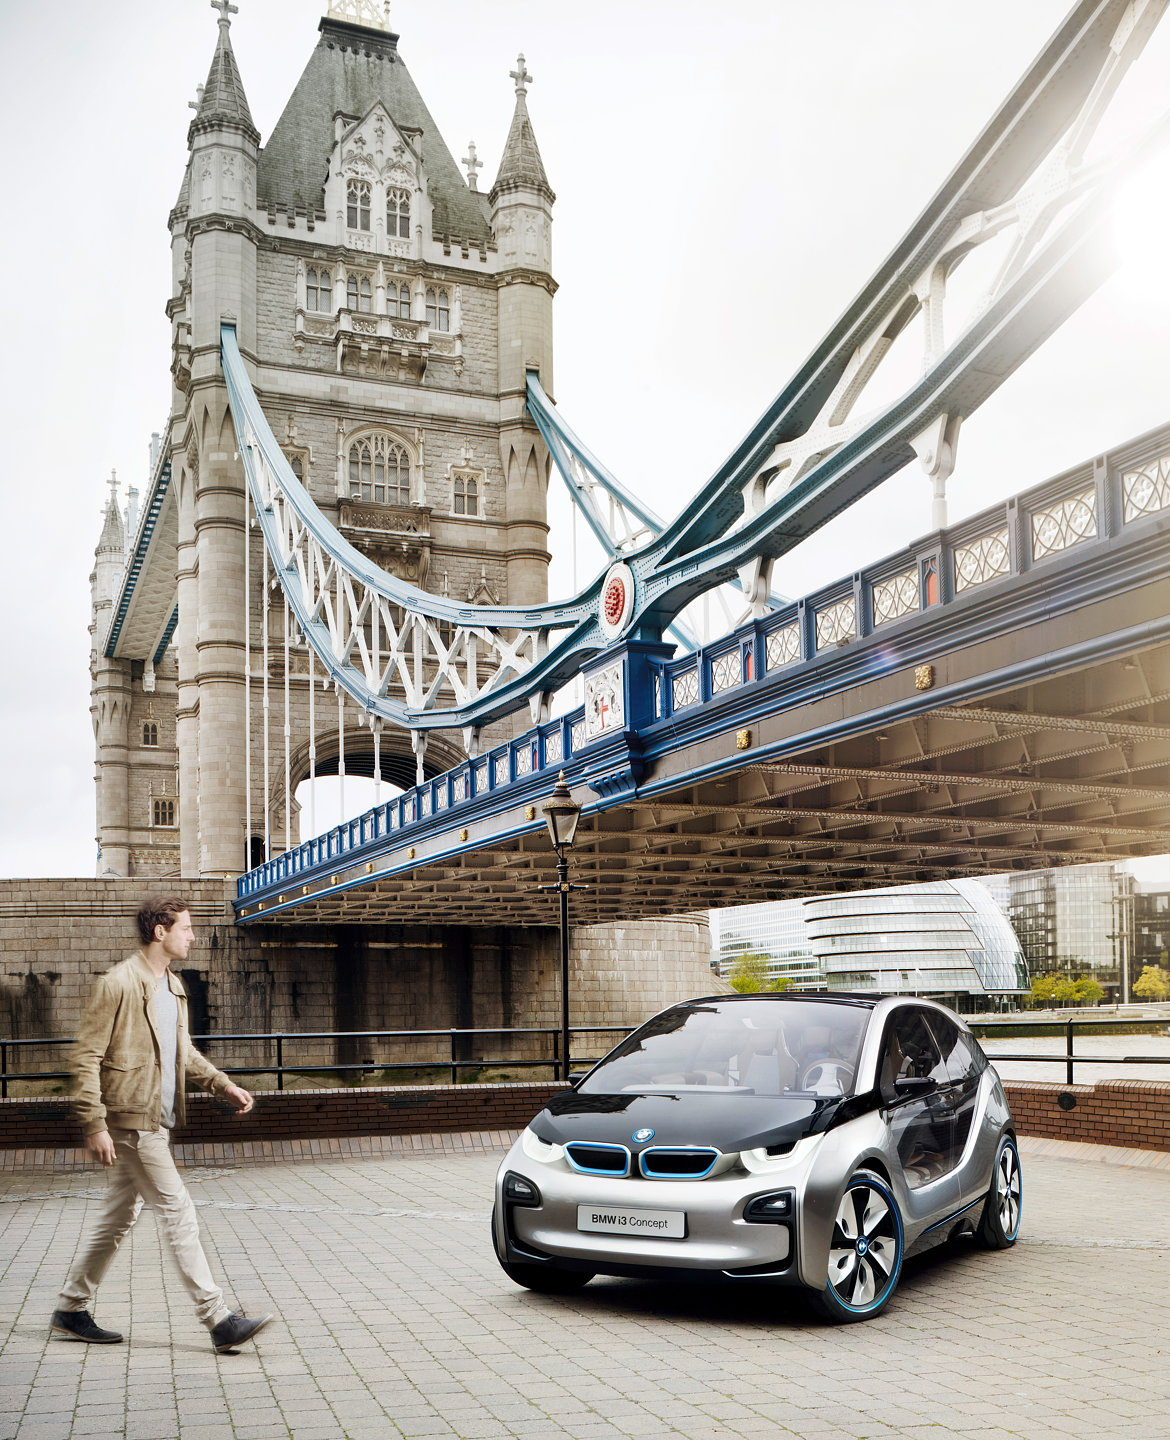 Bmw I3 Mobility 2020 Interior: First BMW I Store Opens In London: New BMW I3 Concept And